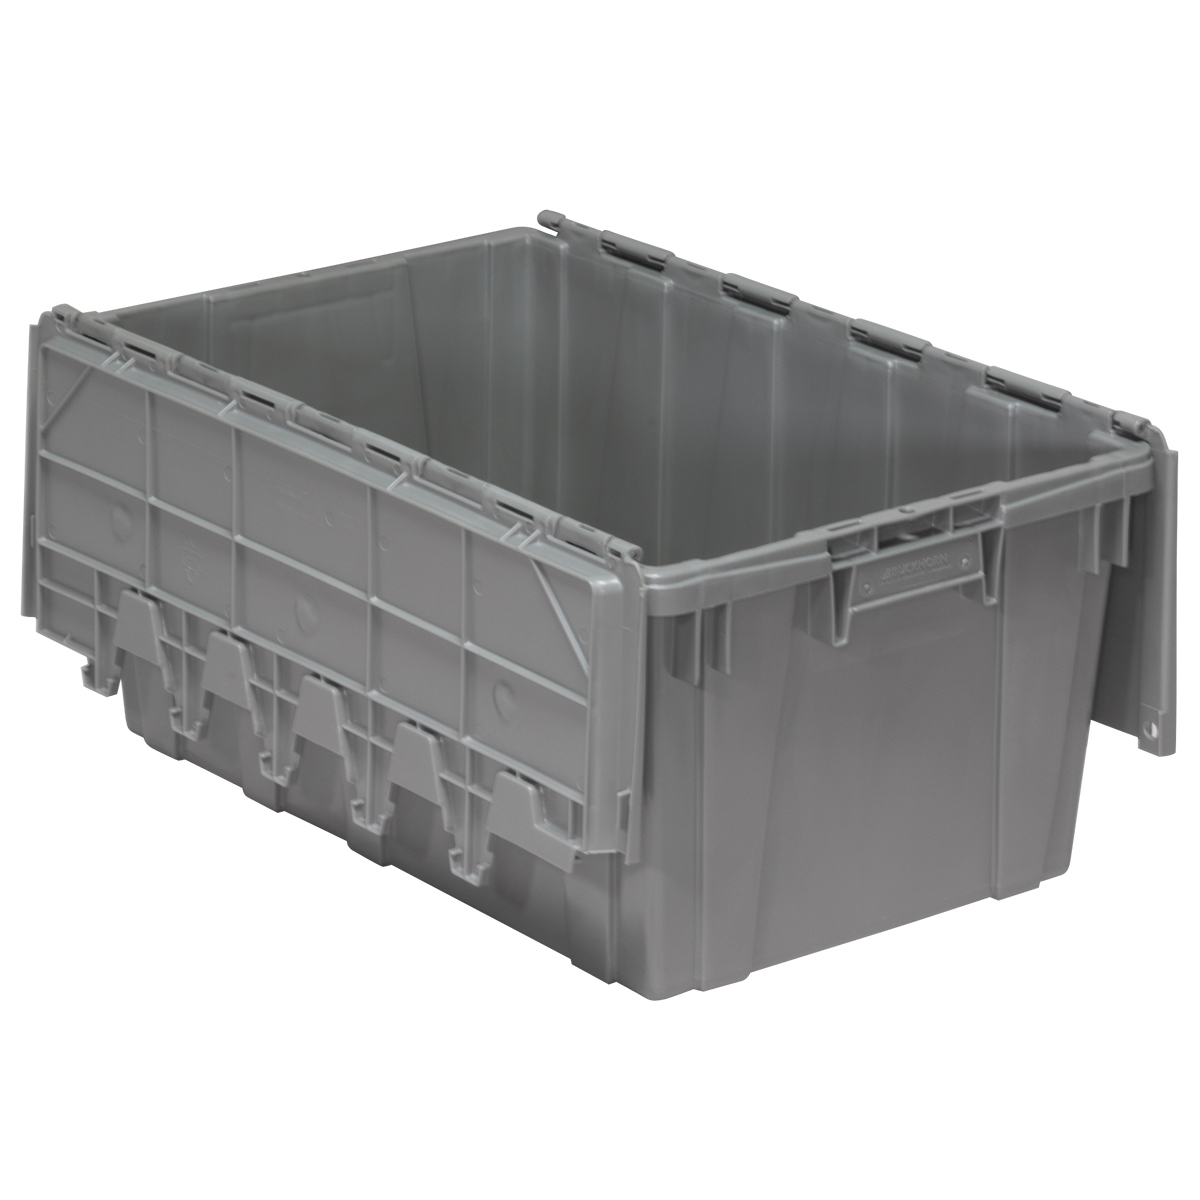 Attached Lid Container 17 gal, 27 x 17 x 12-1/2, Gray (39160).  This item sold in carton quantities of 1.